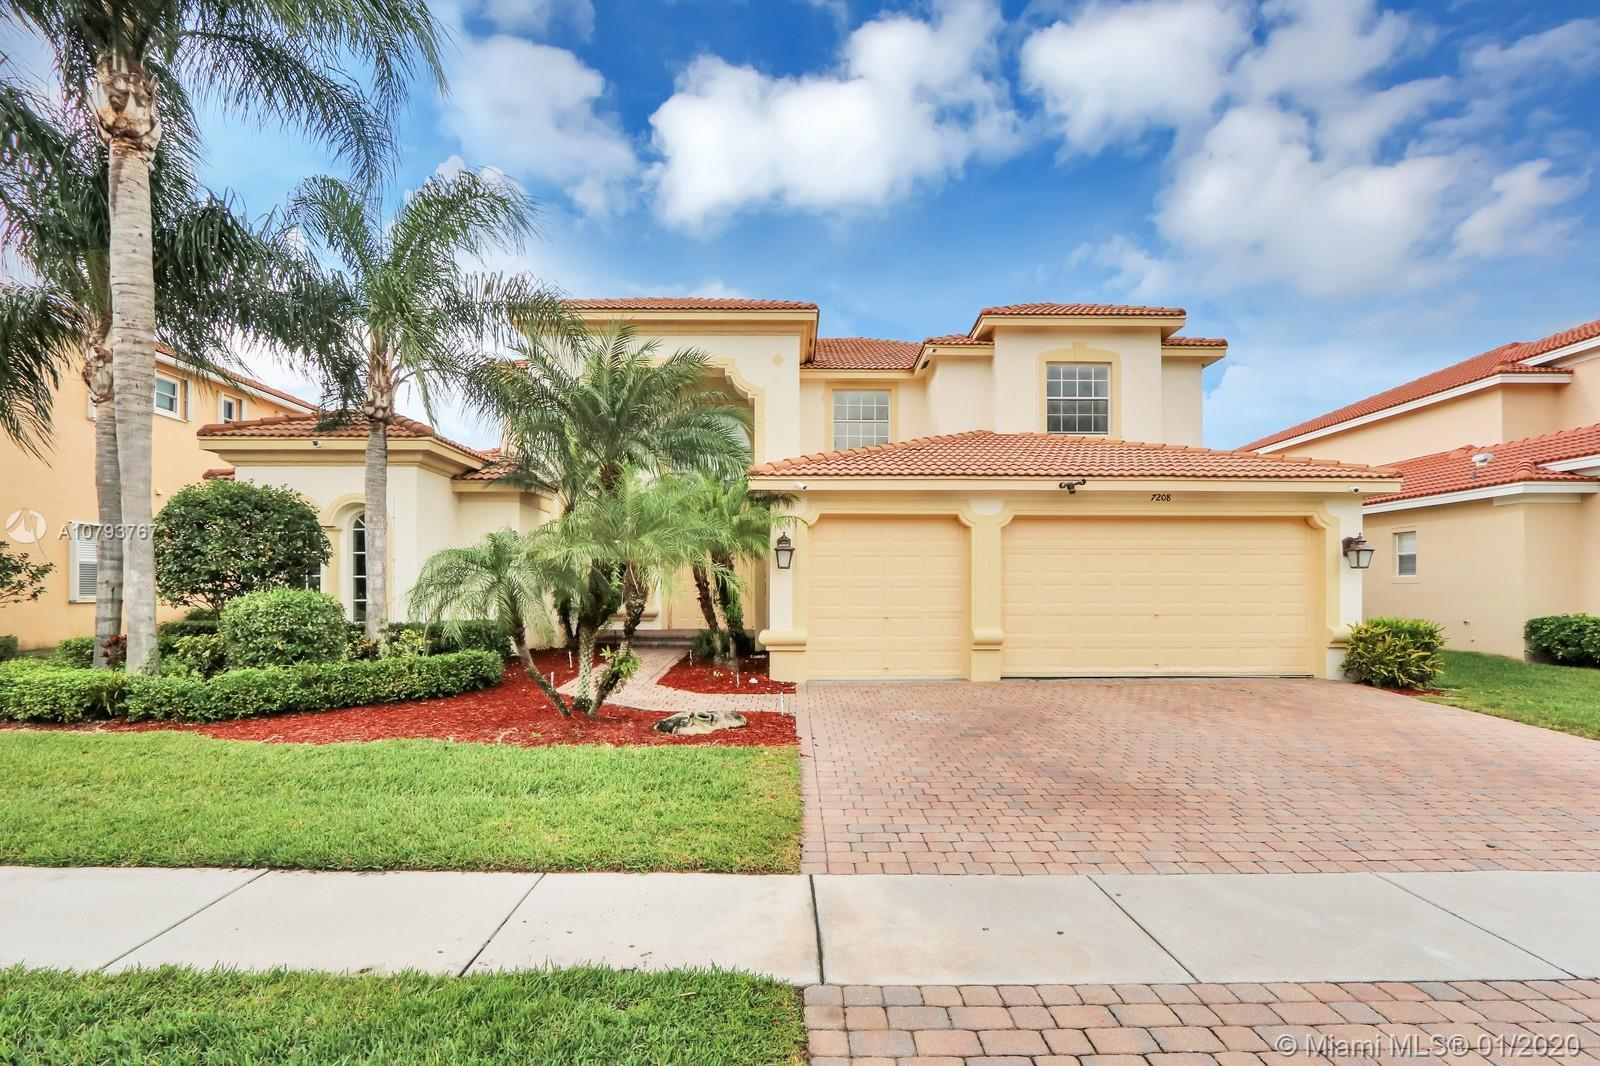 Great 2 story single family home in Isola Bella Estates.  4 beds plus den/office, loft and 2 bonus r